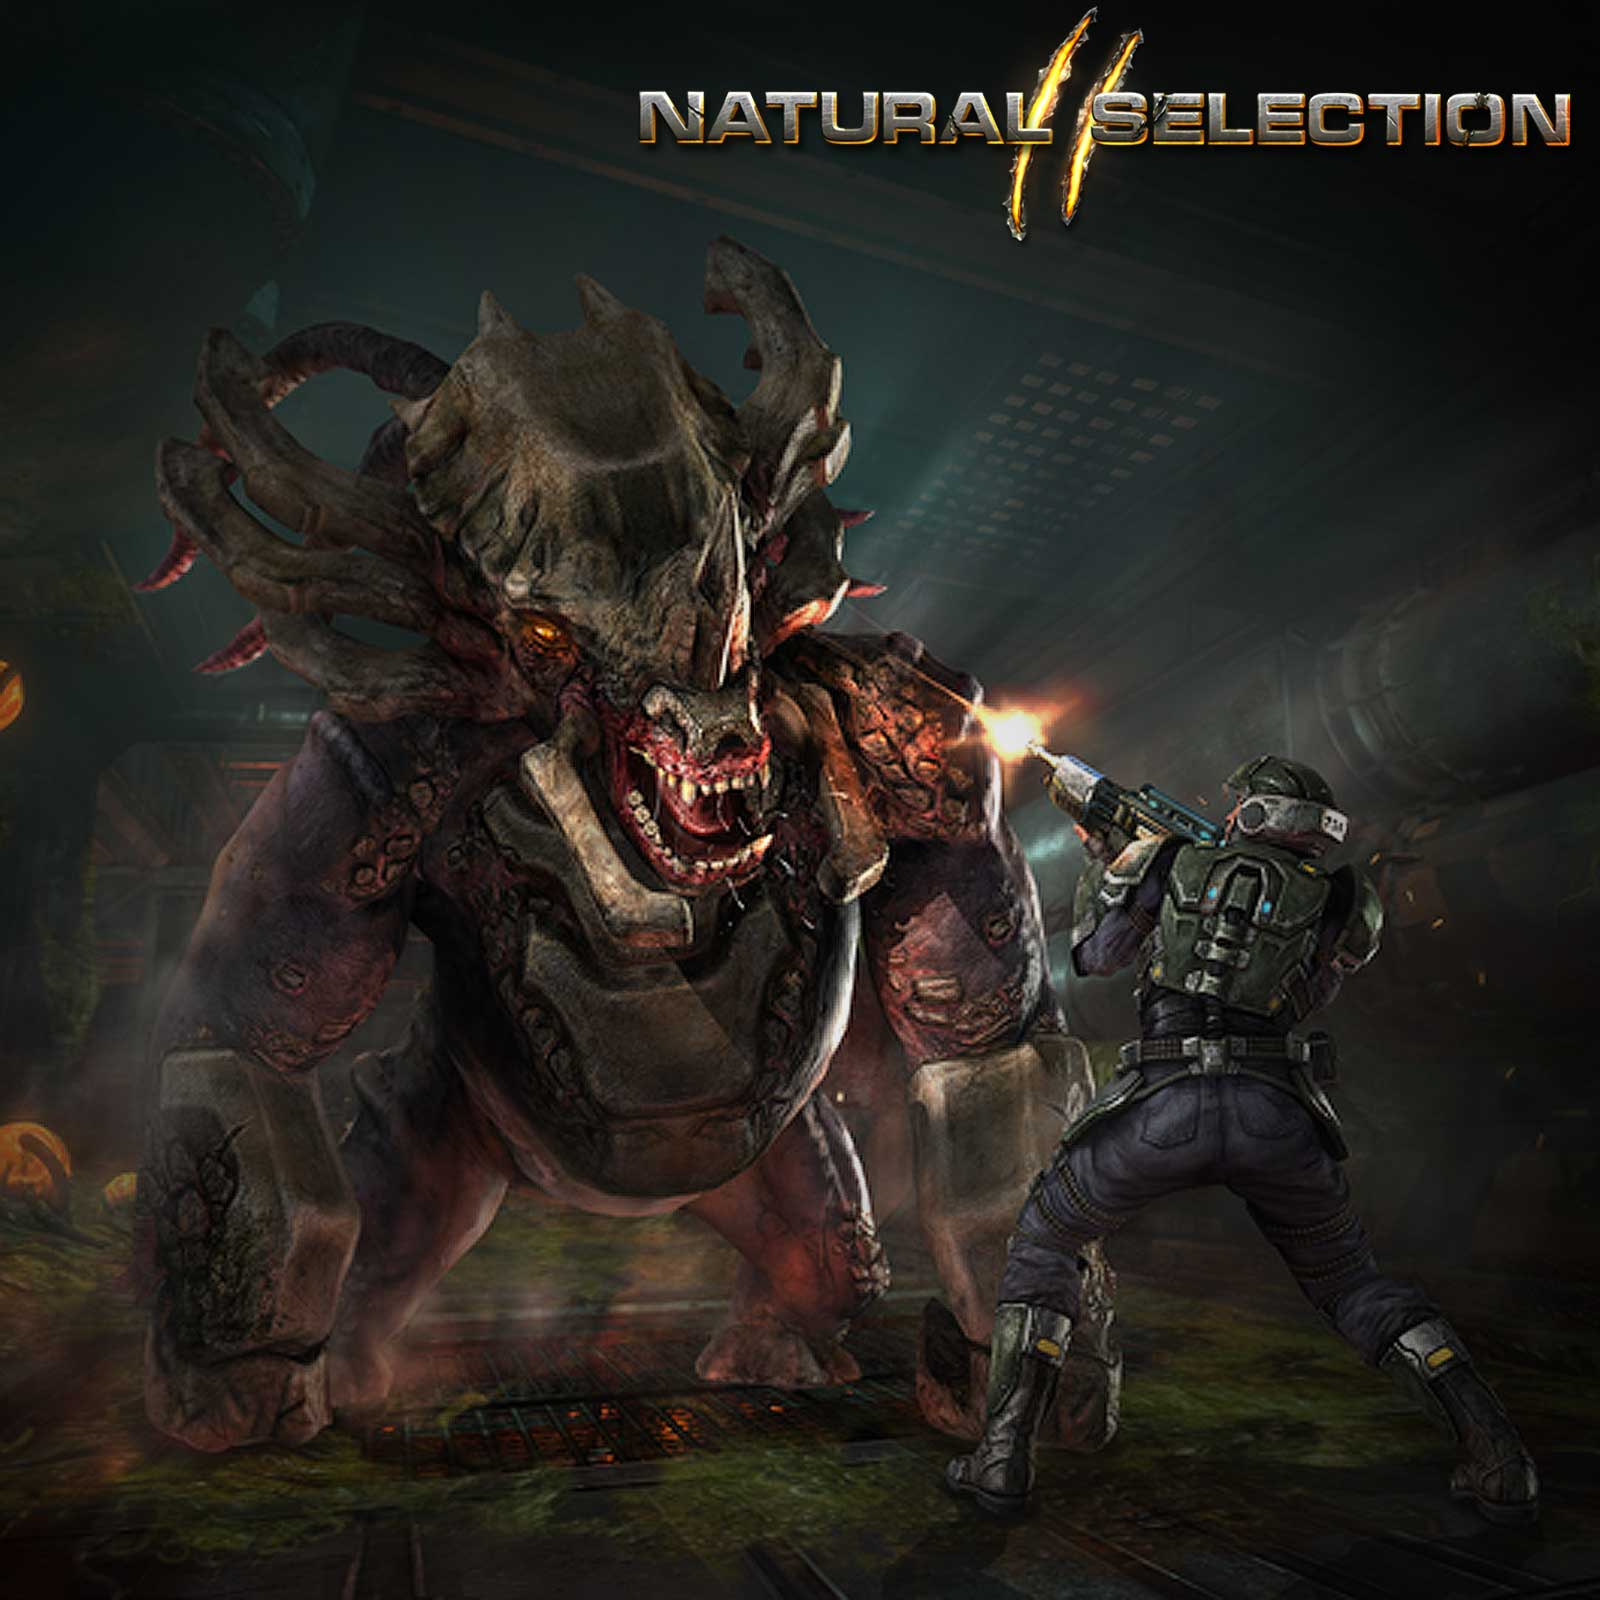 Natural Selection 2 Onos Natural selection 2 officialNatural Selection 2 Lerk